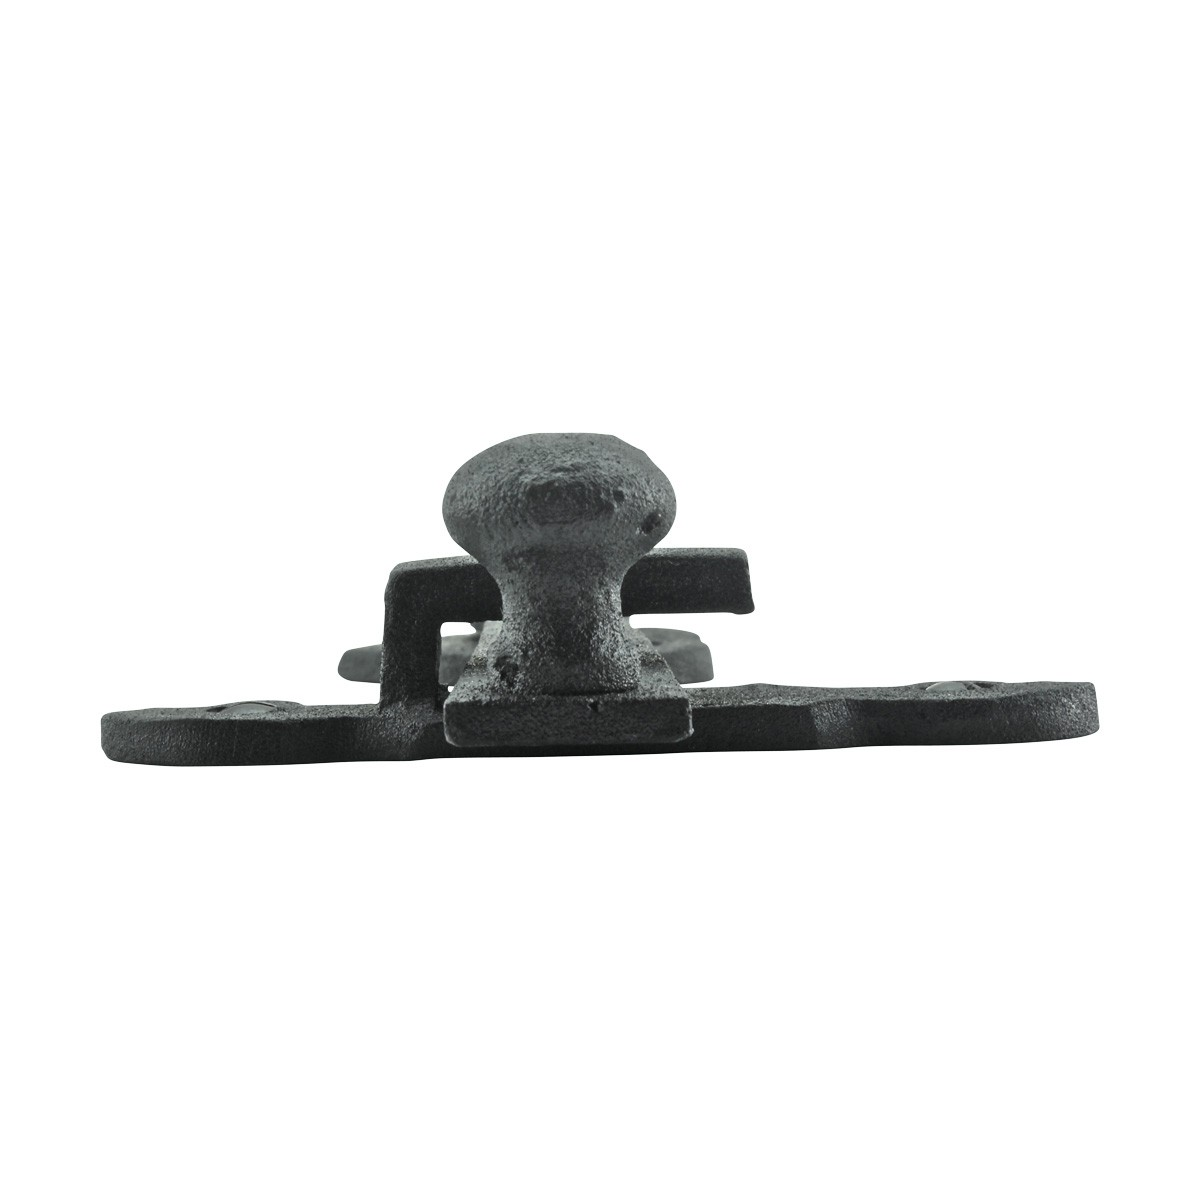 6 Gate Latch Heavy Black Wrought Iron Set 4 X 638 Gate Latches Gate Latch Wrought Iron Gate Latches